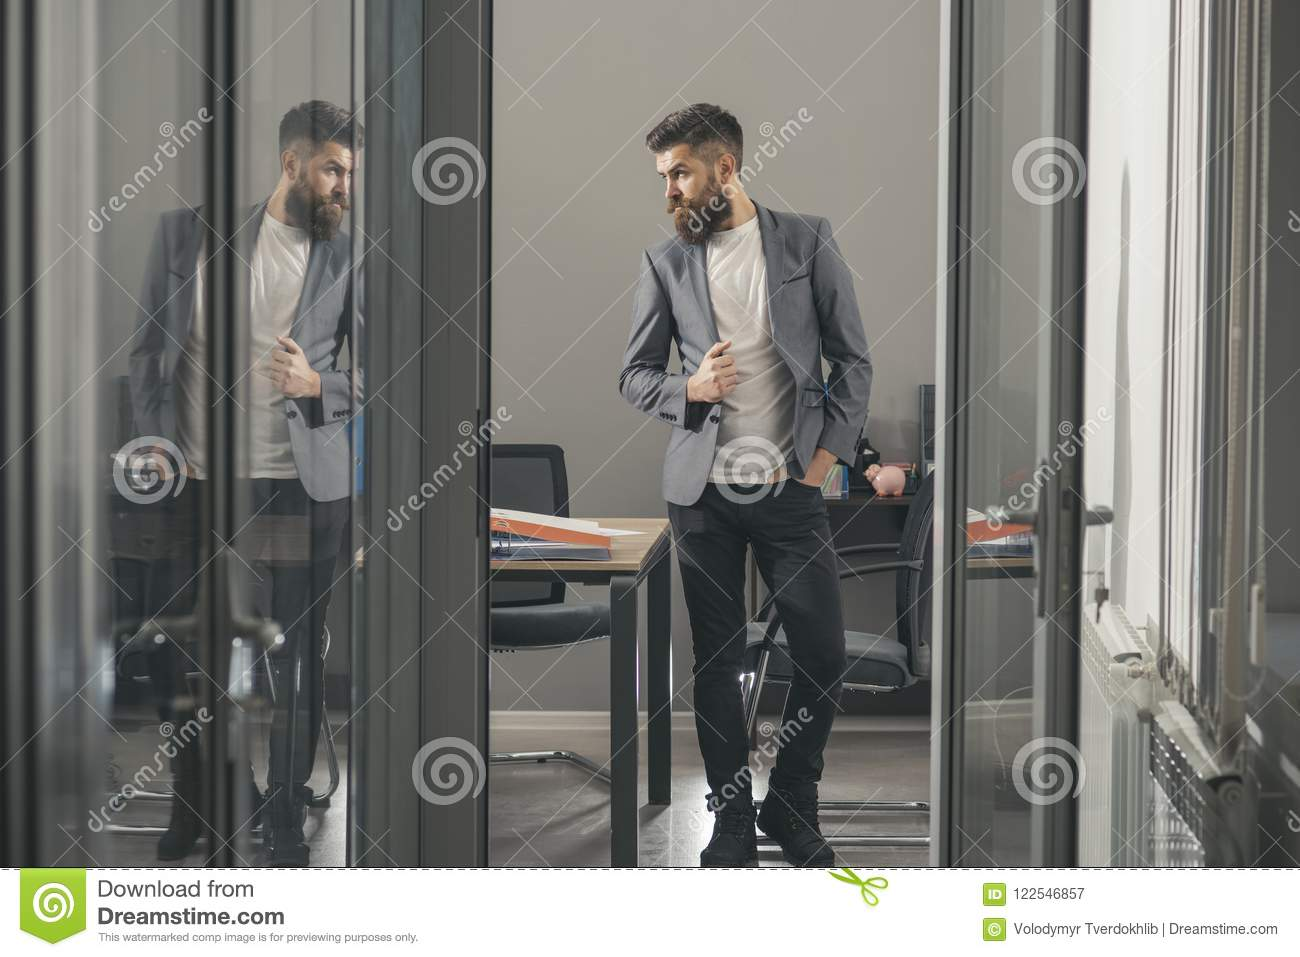 Modern office look Glass Business Man Look Out Office Door Business Man In Modern Office With Glass Walls Ikimasuyo Business Man Look Out Office Door Business Man In Modern Office